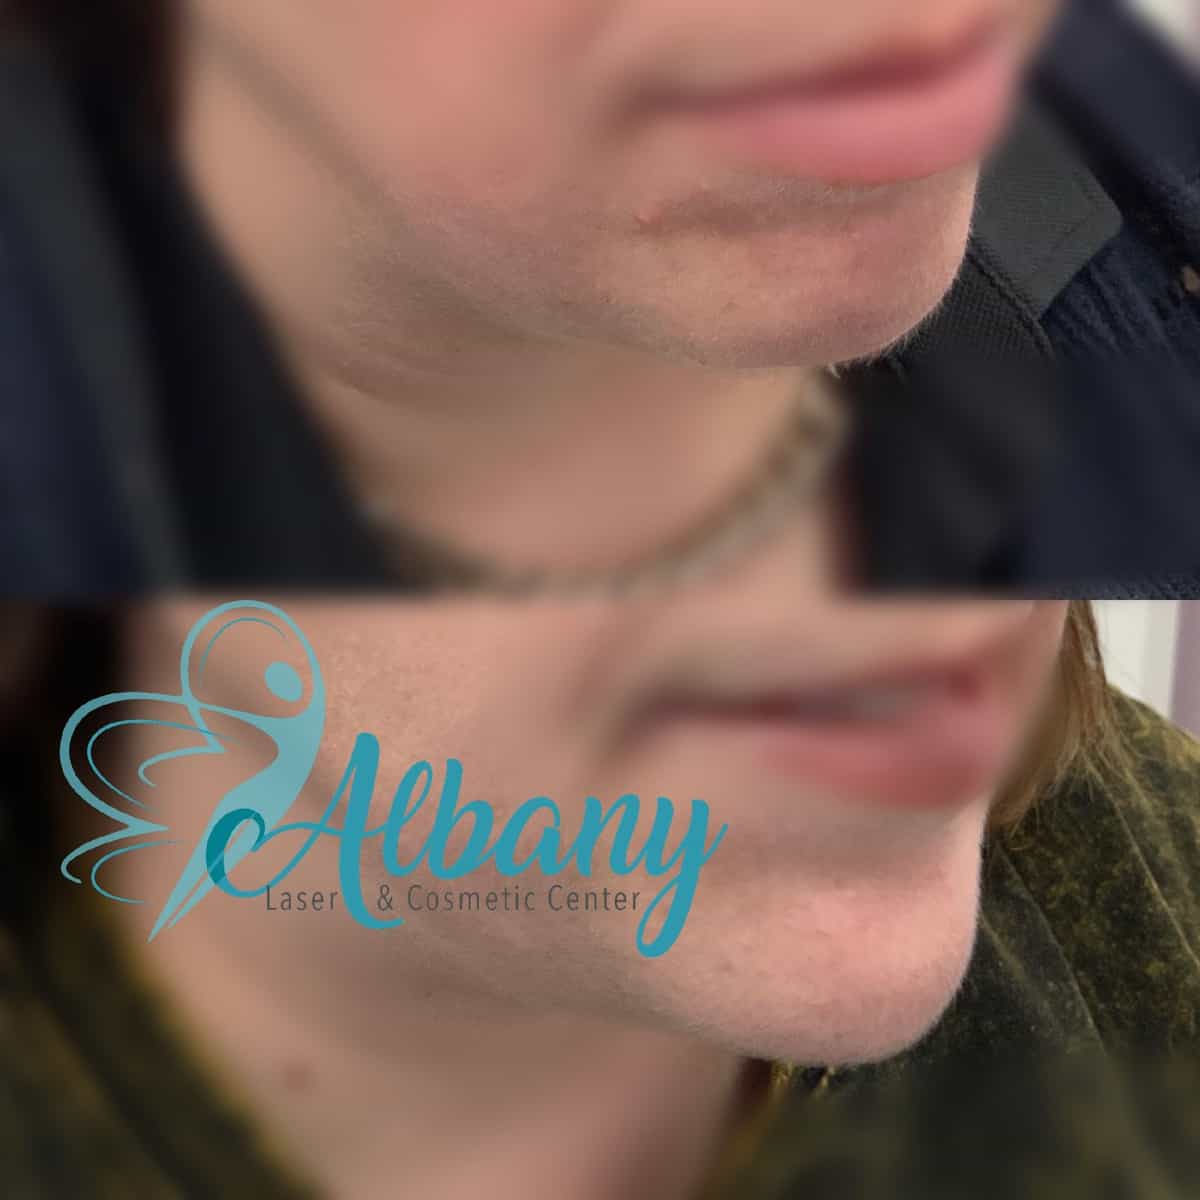 chin augmentation Edmonton